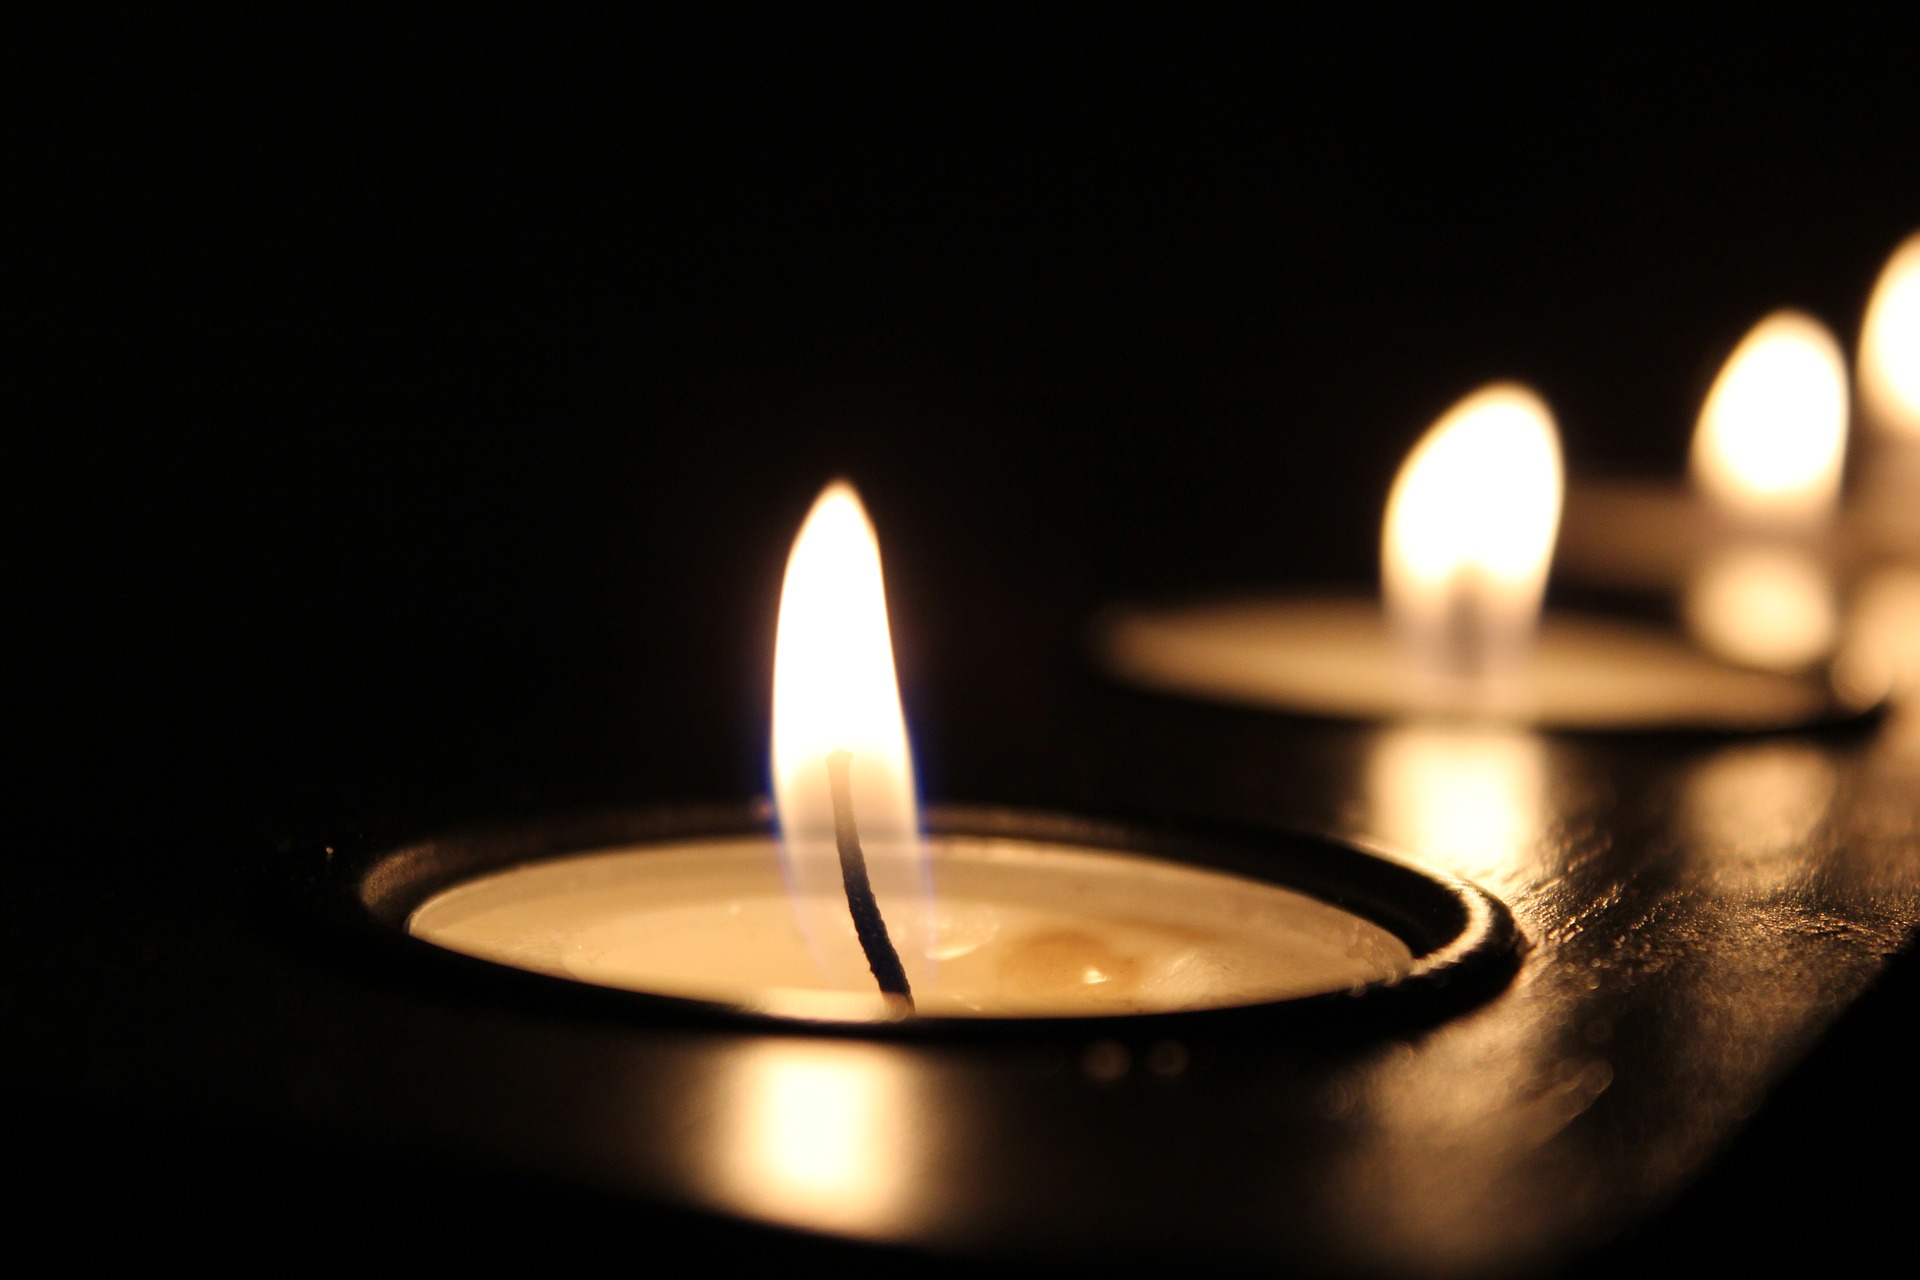 candles, pollution, smoke, candle